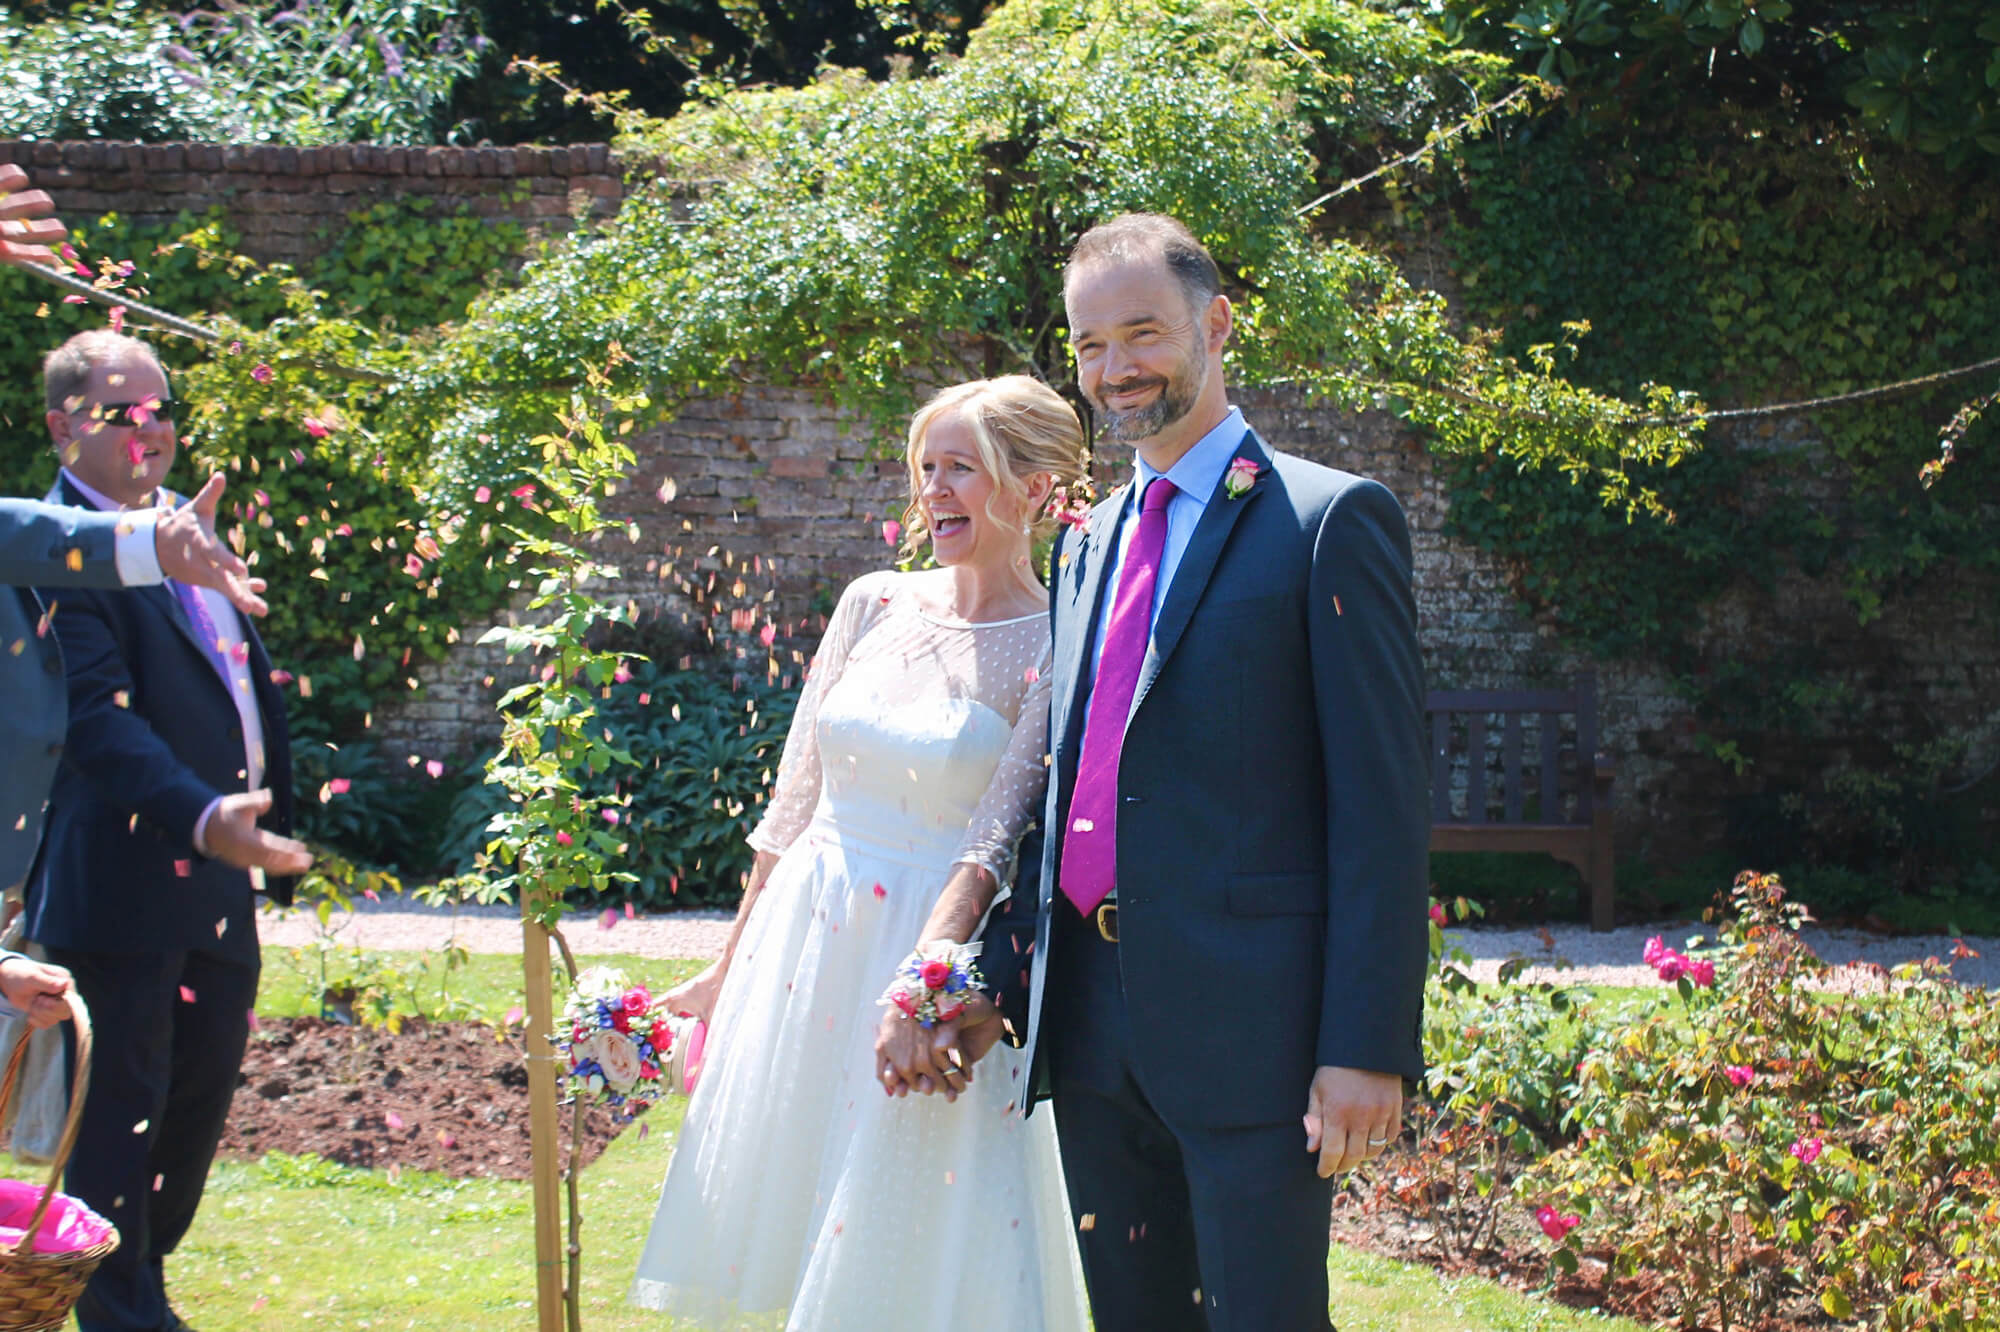 A couple newly married in a garden on a sunny day